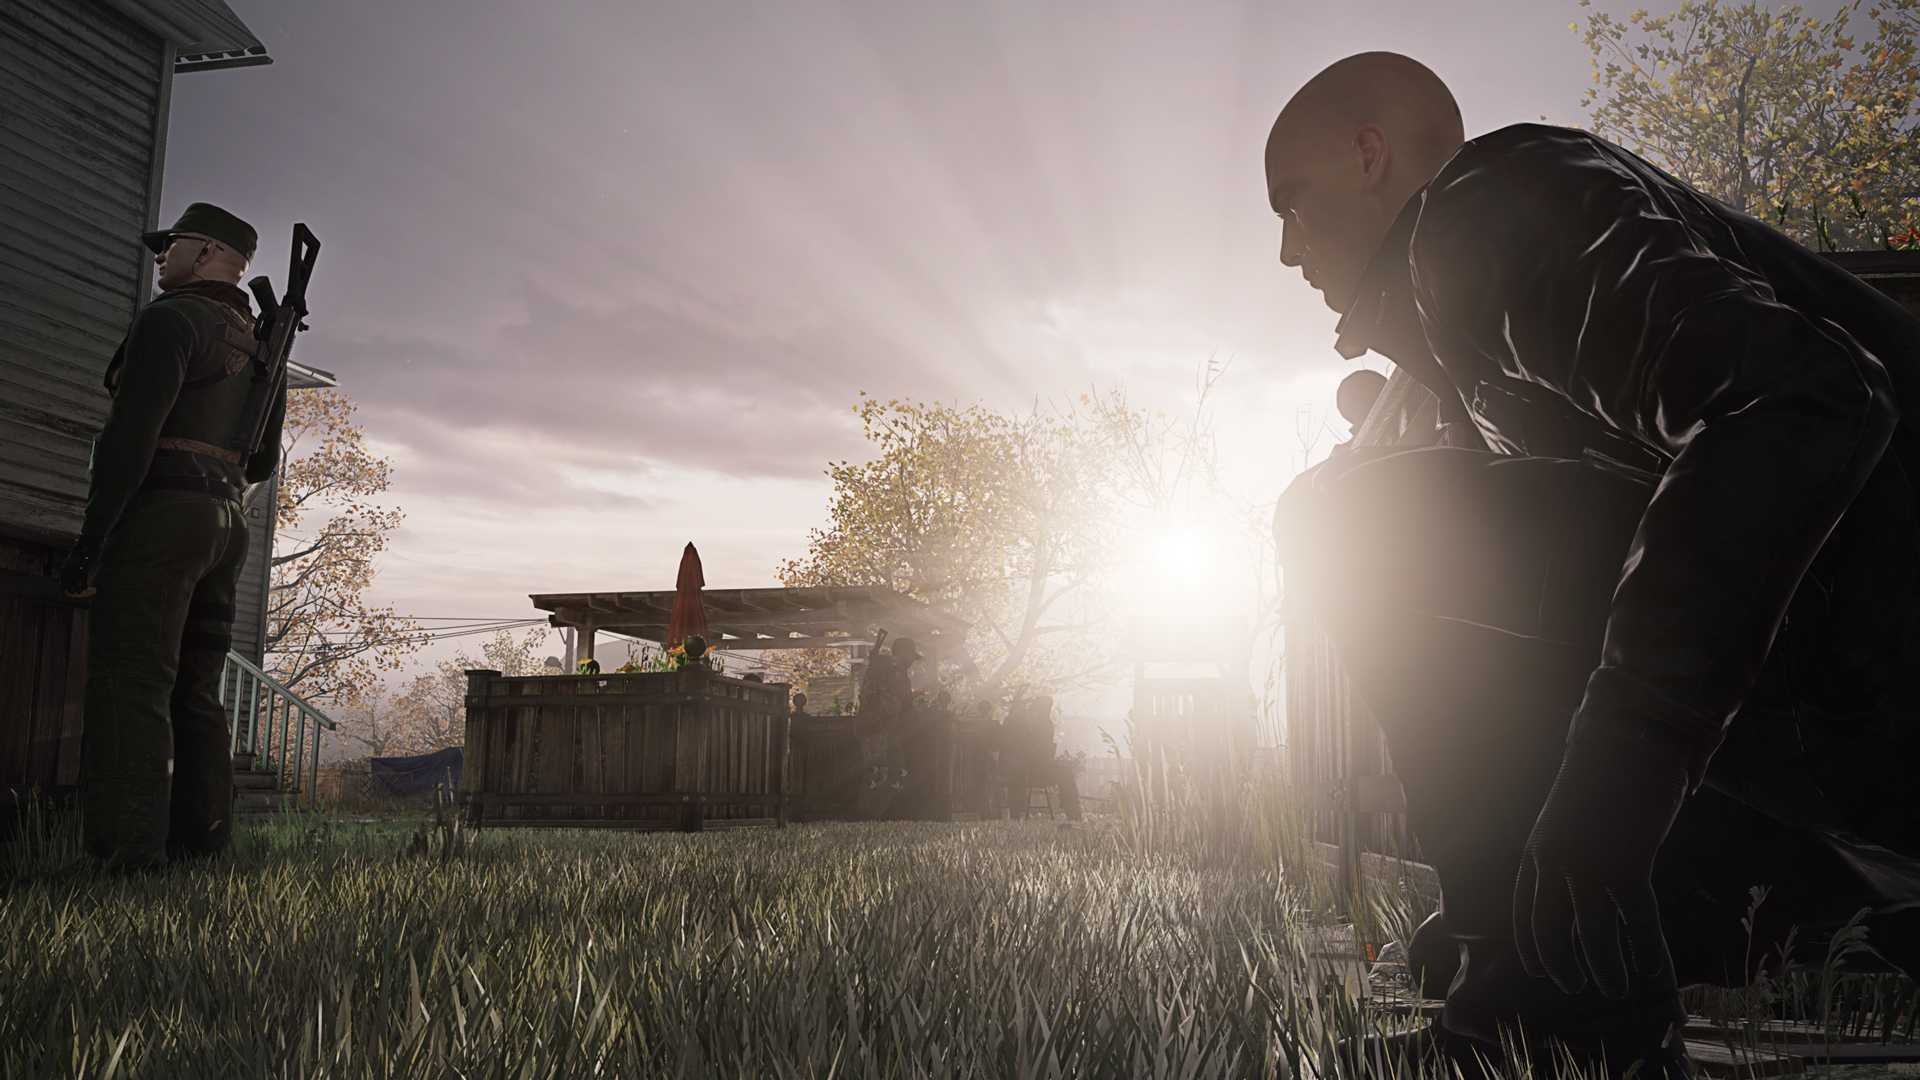 Hitman's story misses the mark